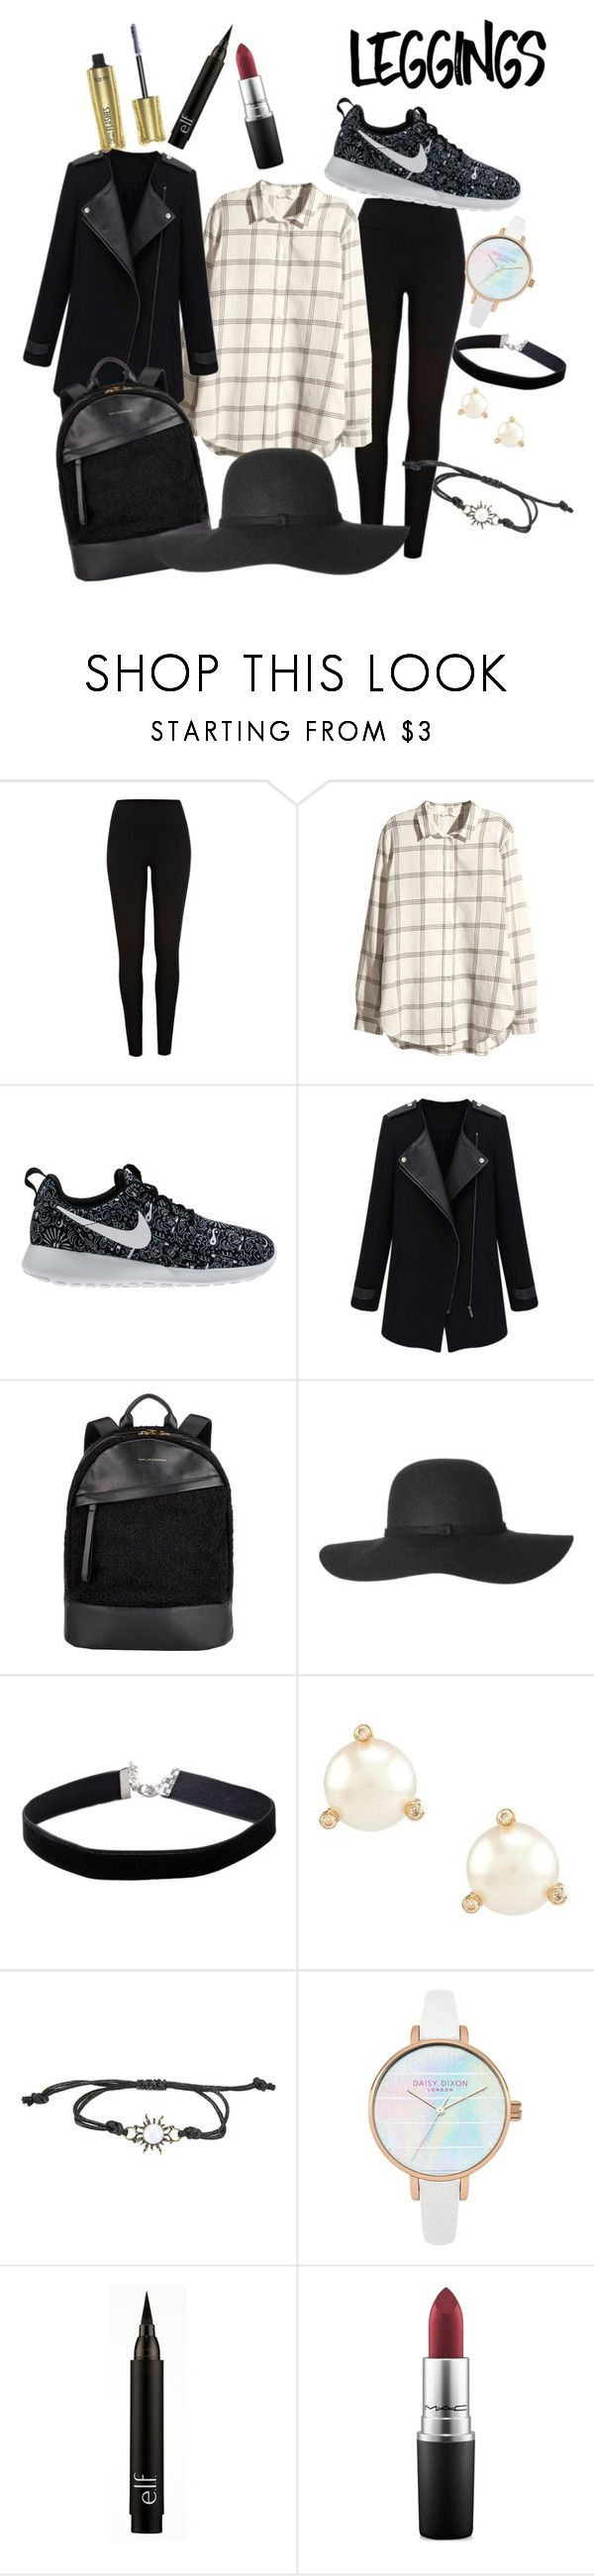 """Monochrome Legging Look"" by hollynagle on Polyvore featuring River Island, H&M, NIKE, Want Les Essentiels de la Vie, Miss Selfridge, Kate Spade, MAC Cosmetics, tarte, Leggings and WardrobeStaples"